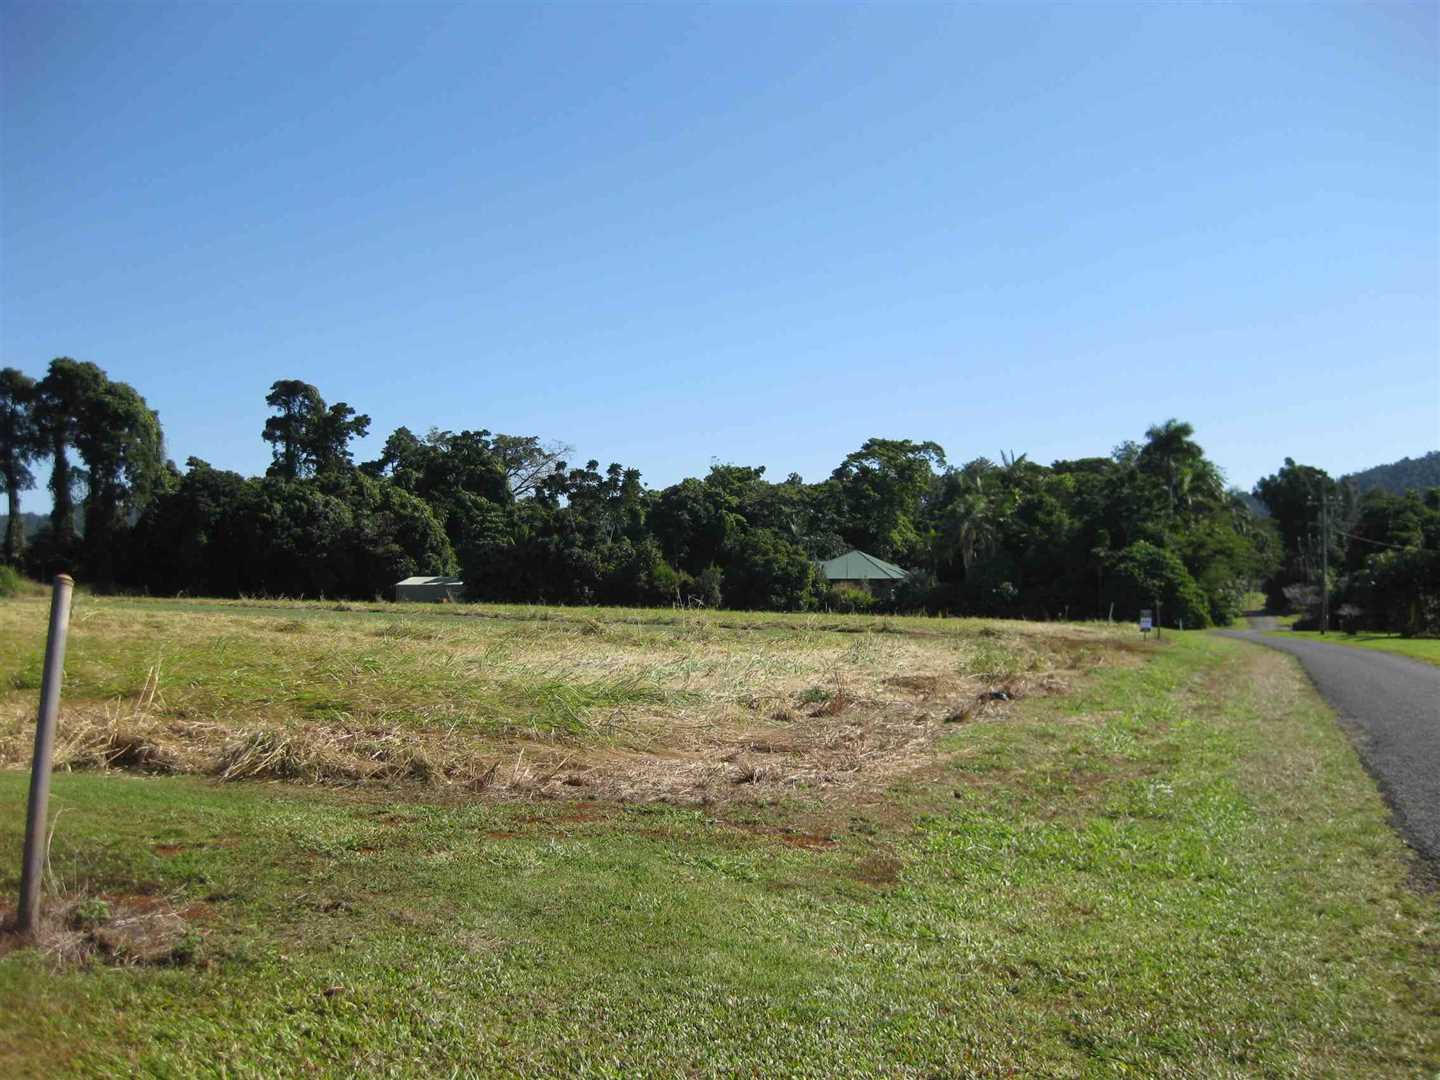 View of part of property from road adjacent to North Eastern boundary looking approx. West